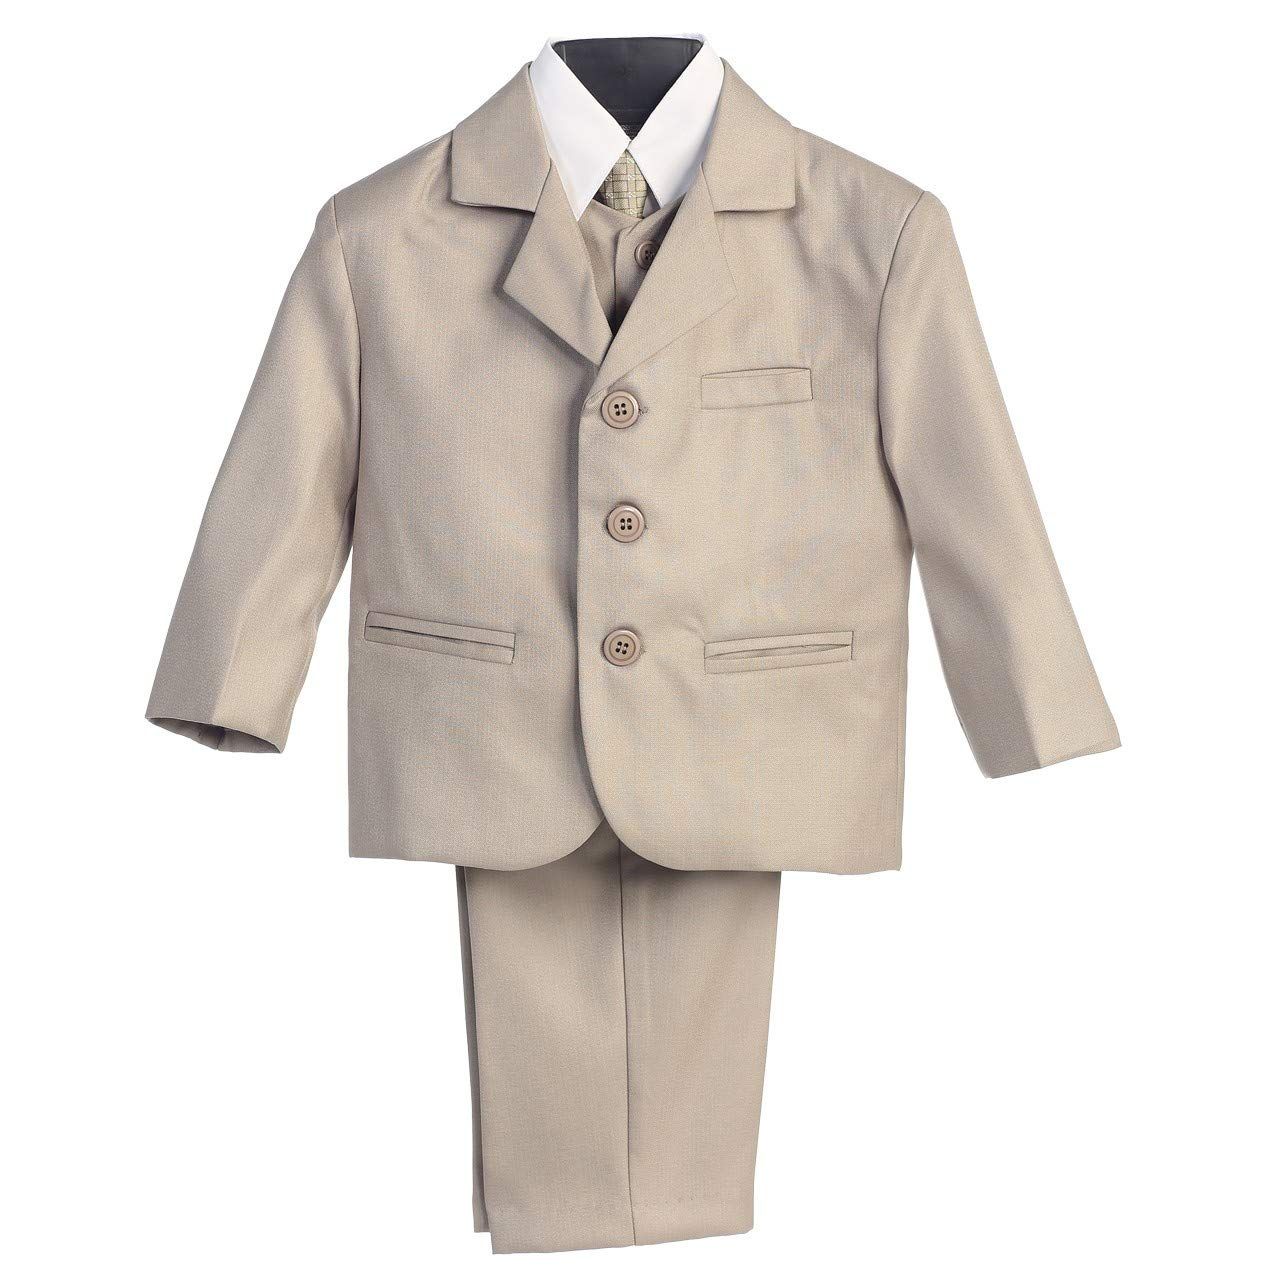 Baby Boy Khaki Formal Special Occasion 5pc Suit Set 12M by Lito